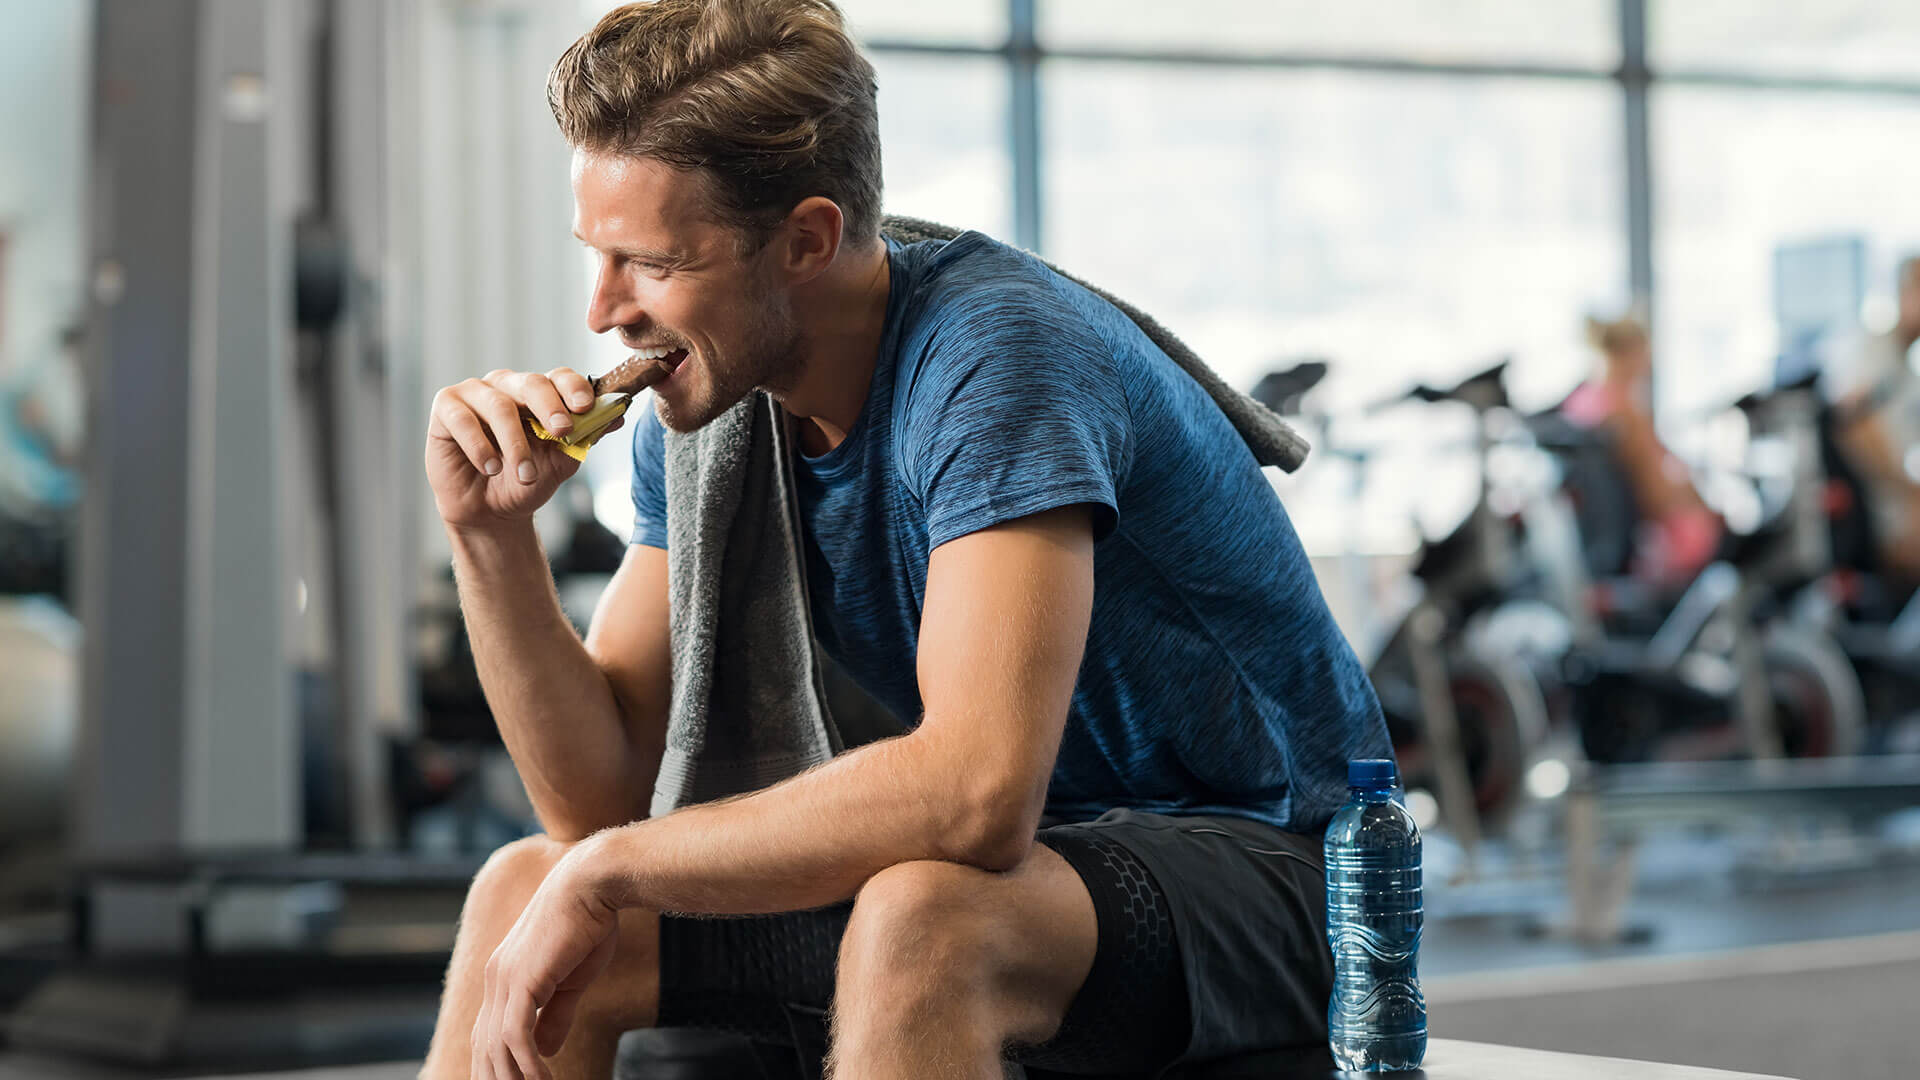 A man consuming a fiber snack bar inside of a gym, post-workout.